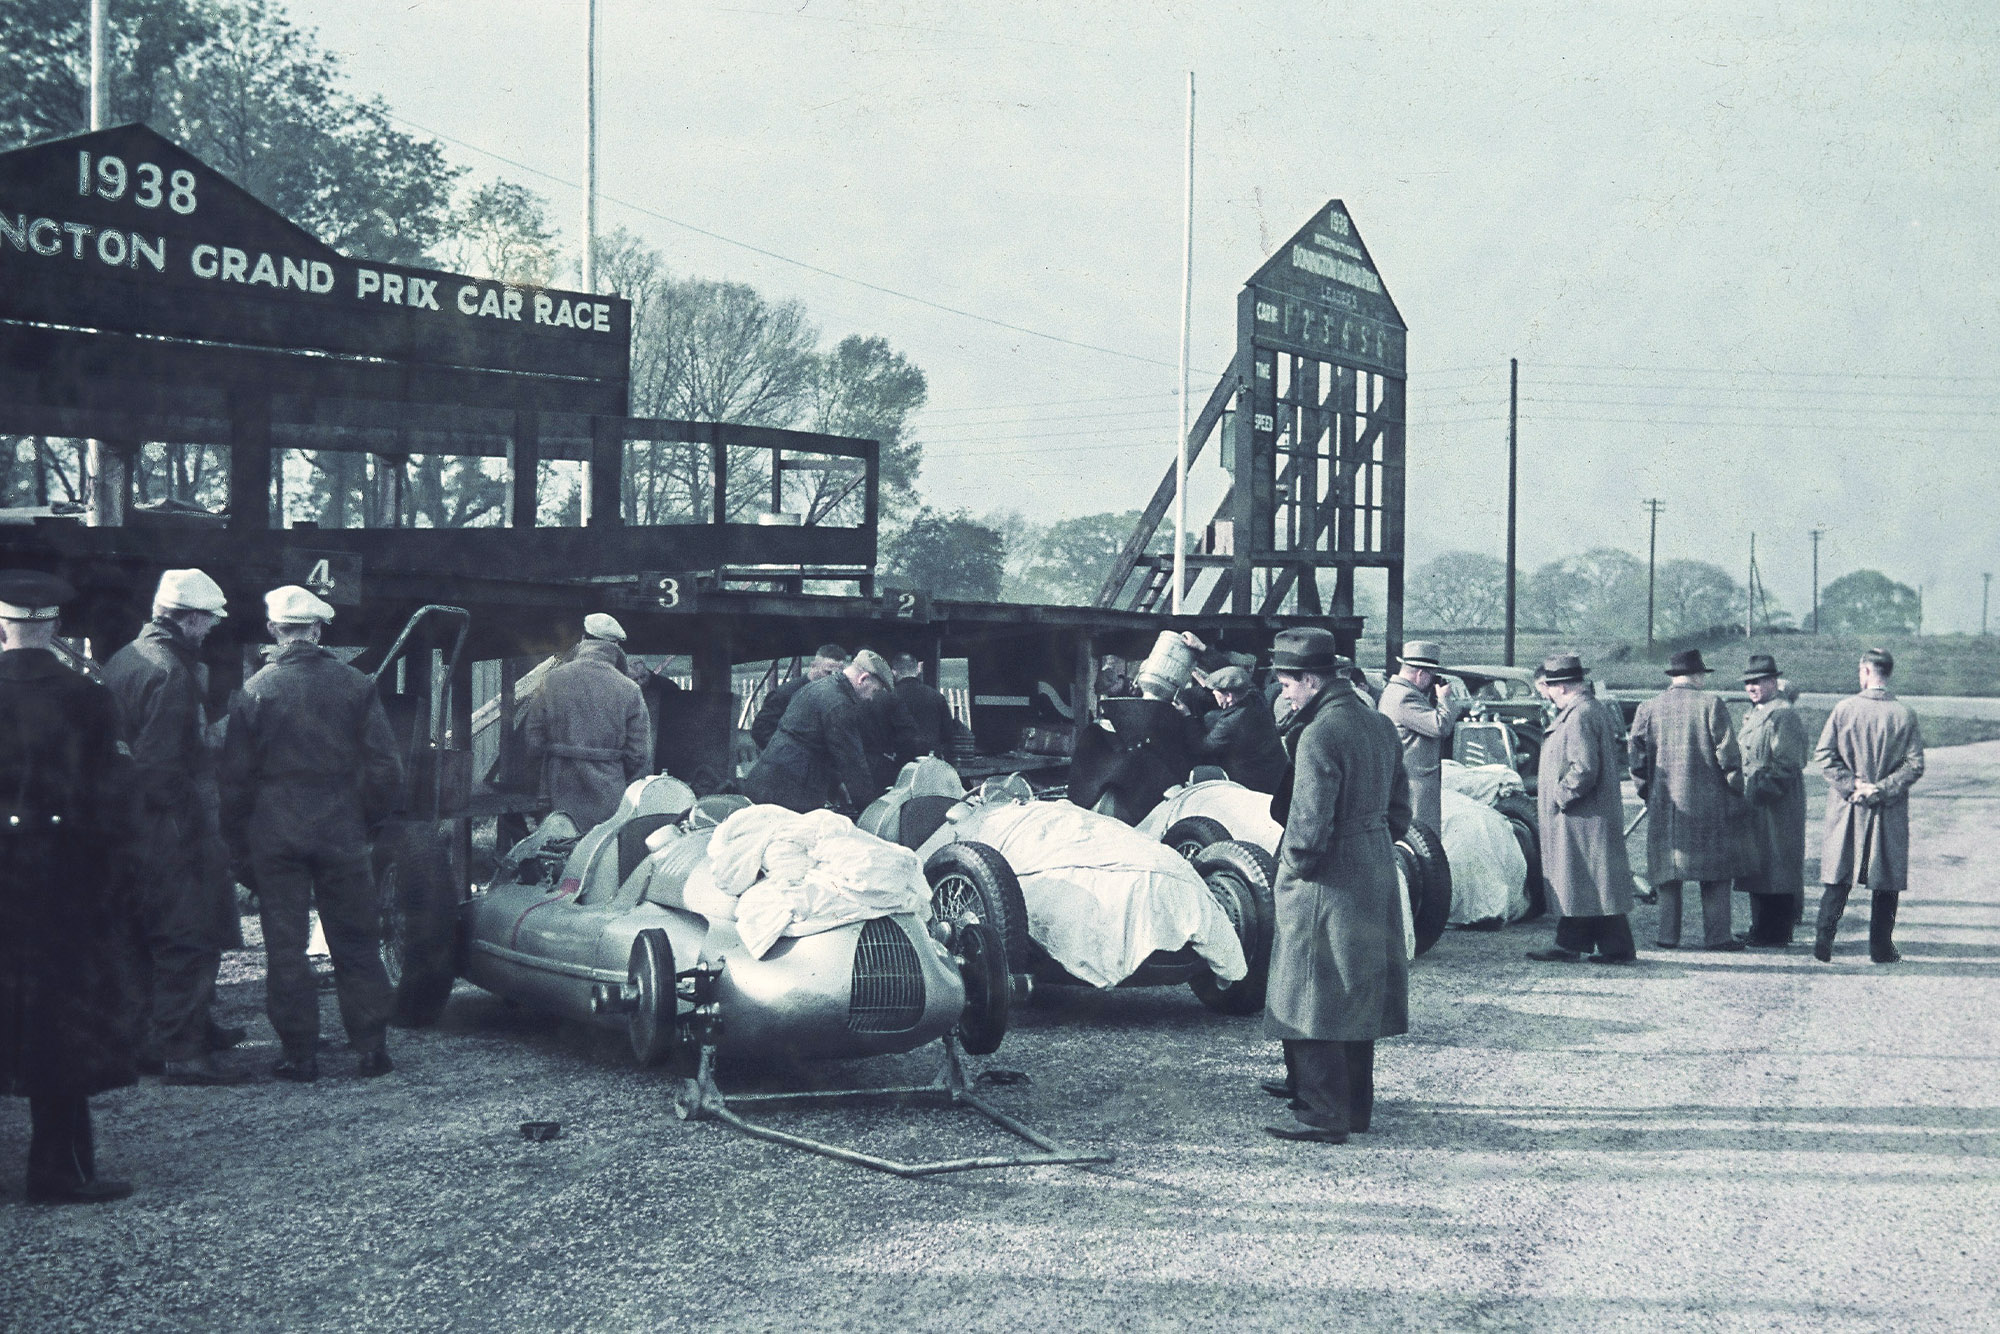 Auto Union cars lined up in the pitlane at Donington Park ahead of the 1938 Grand Prix